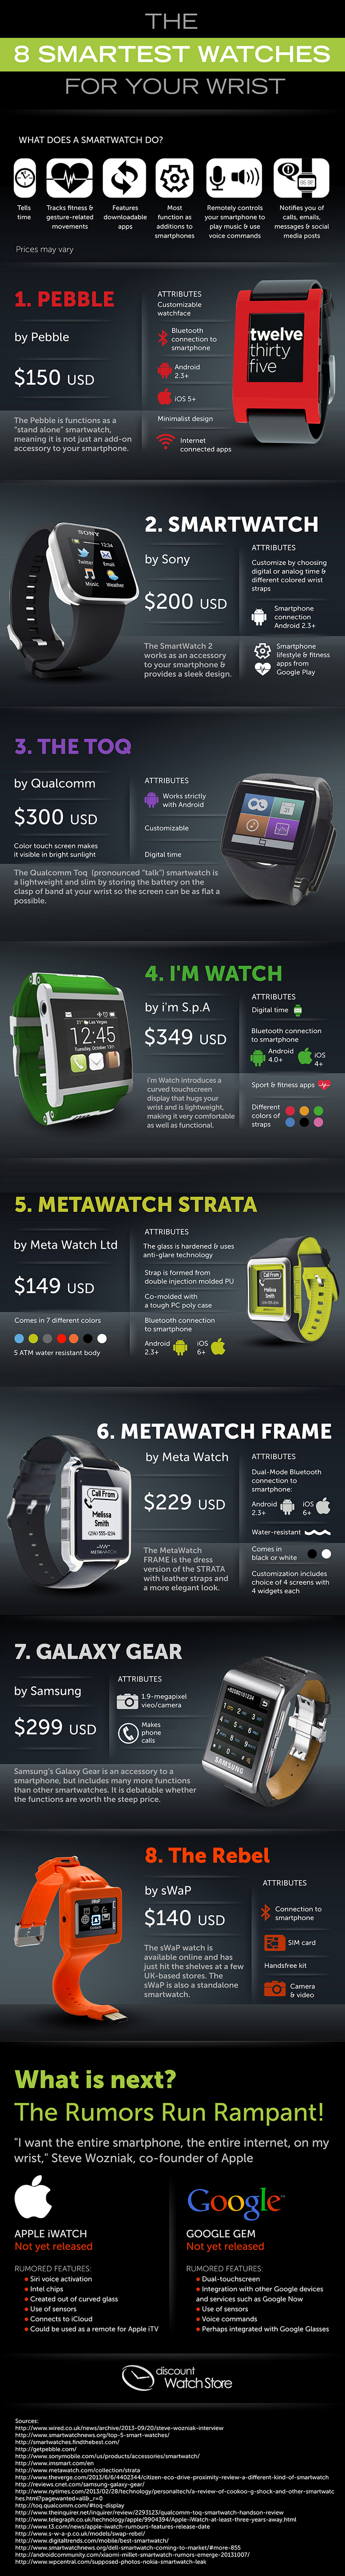 Smartwatches-on-the-Market